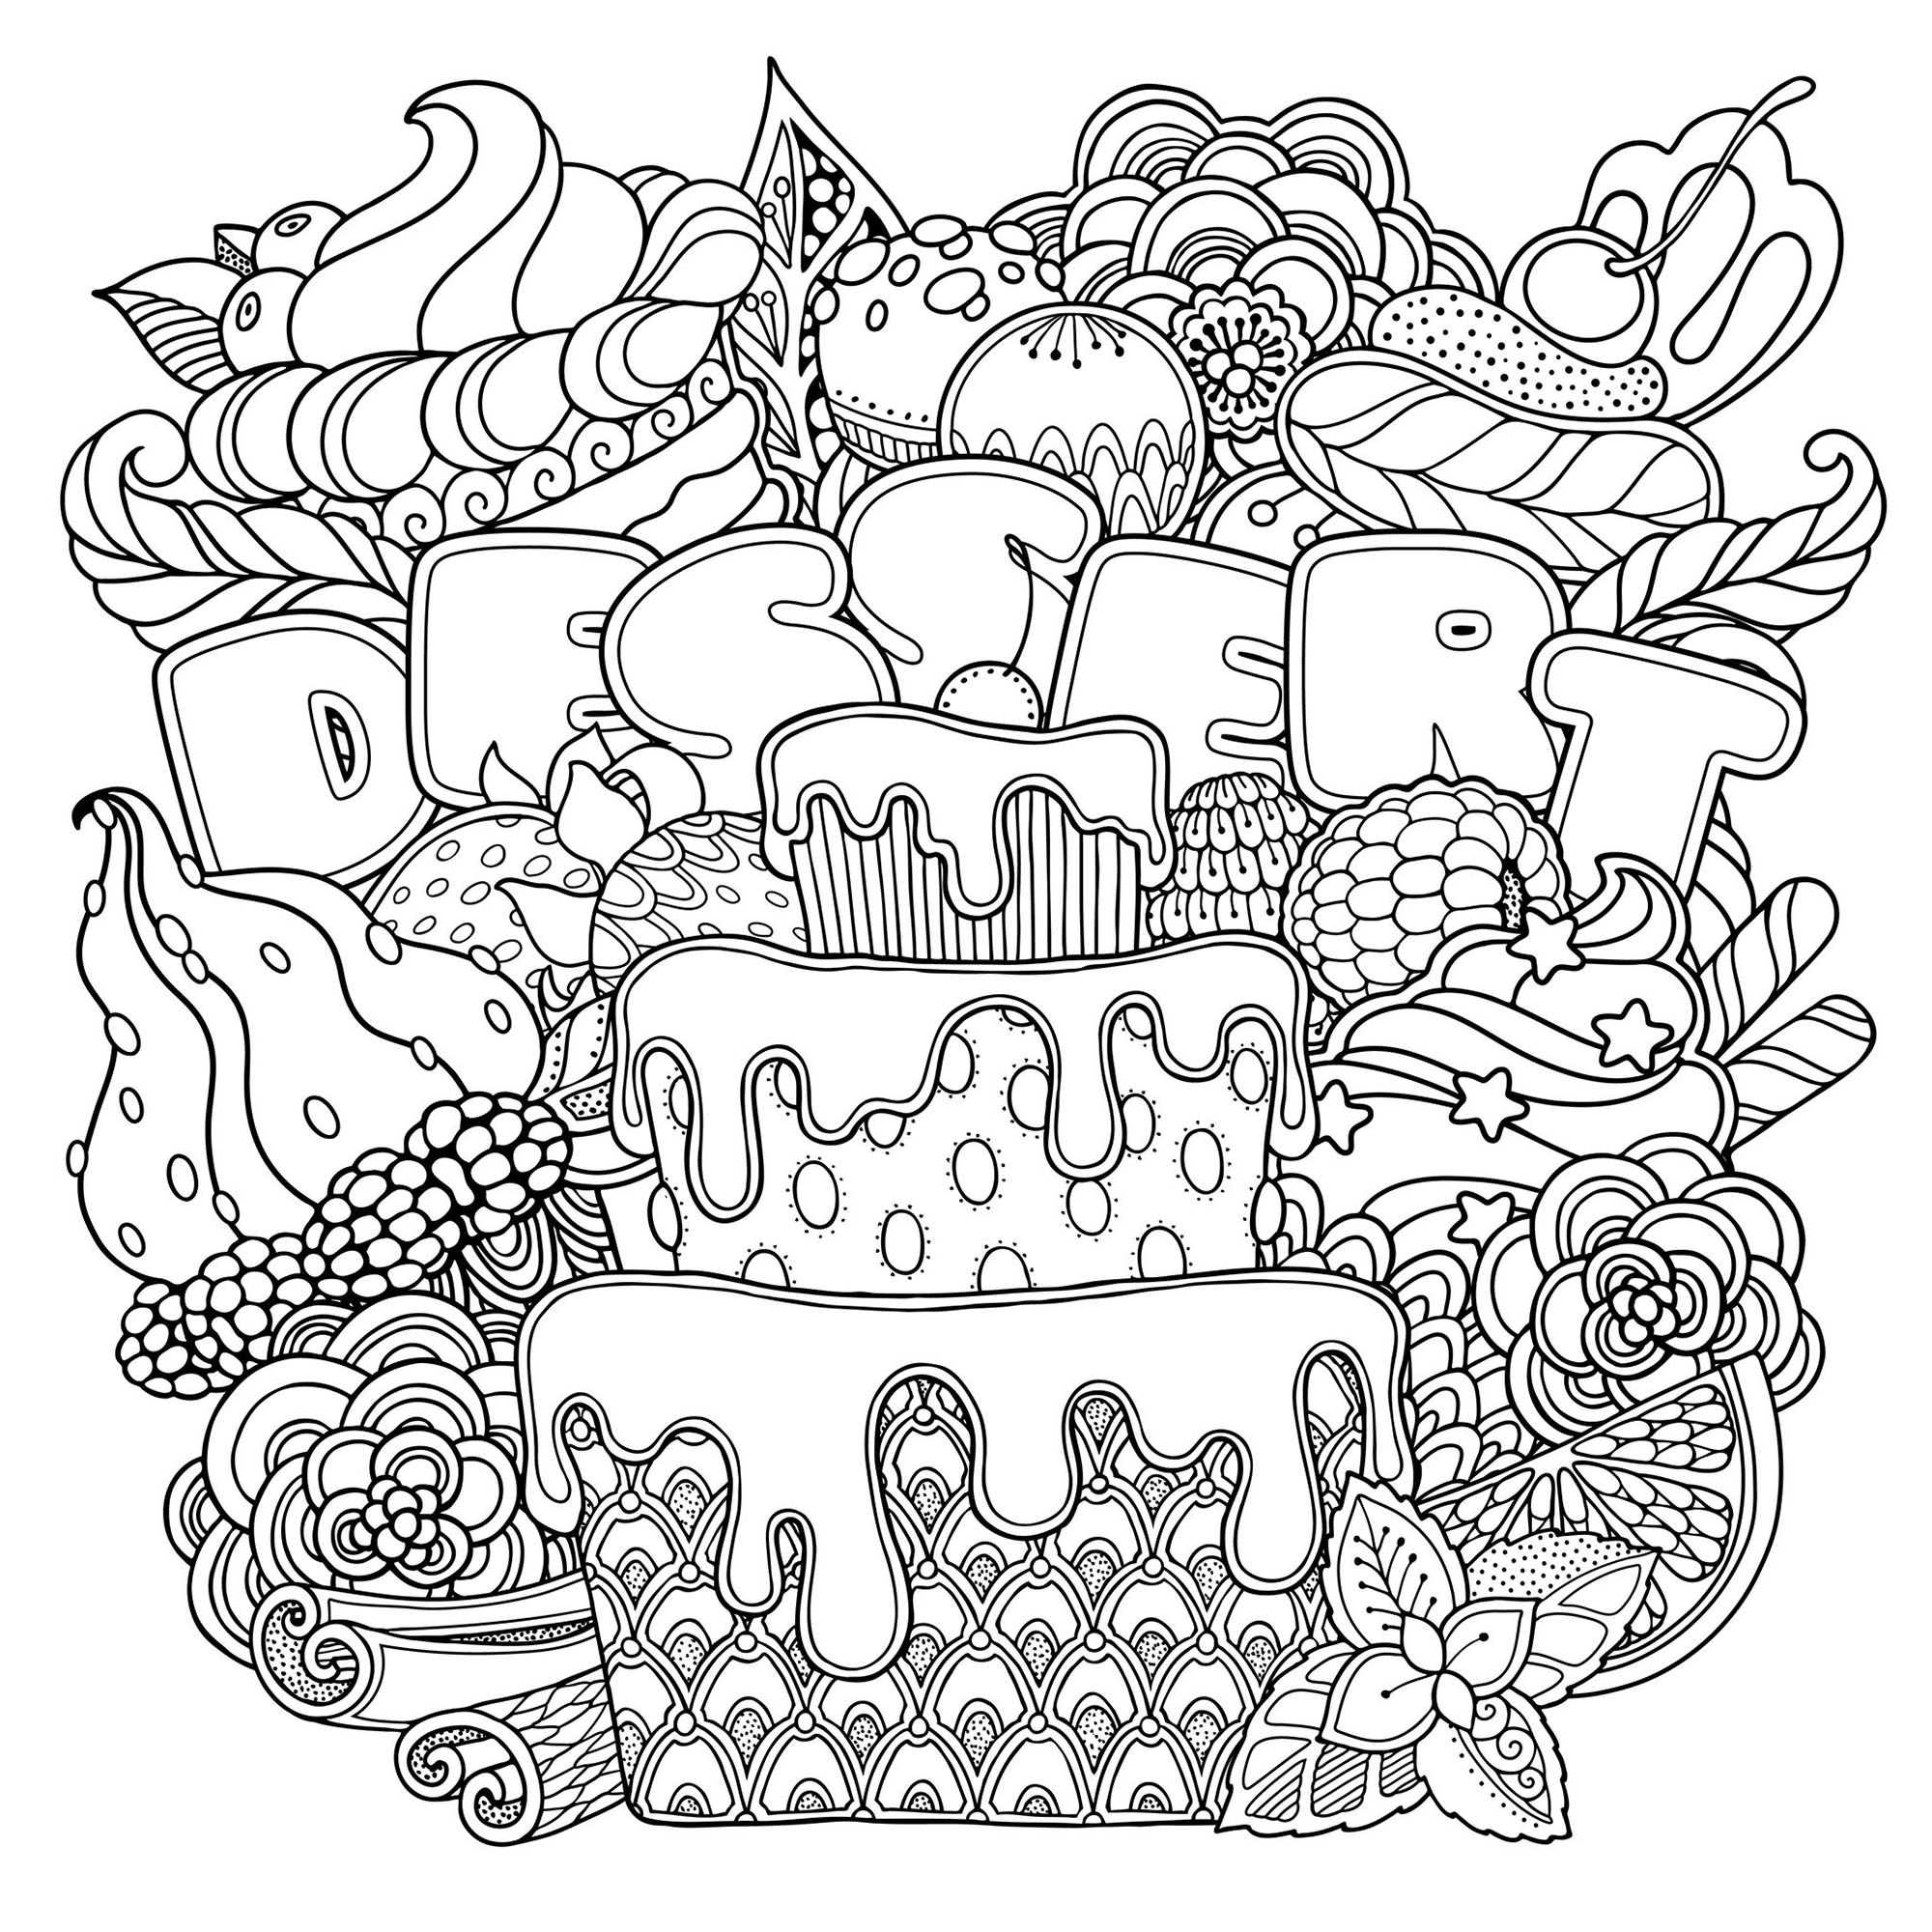 Mix of desserts - Cupcakes Adult Coloring Pages